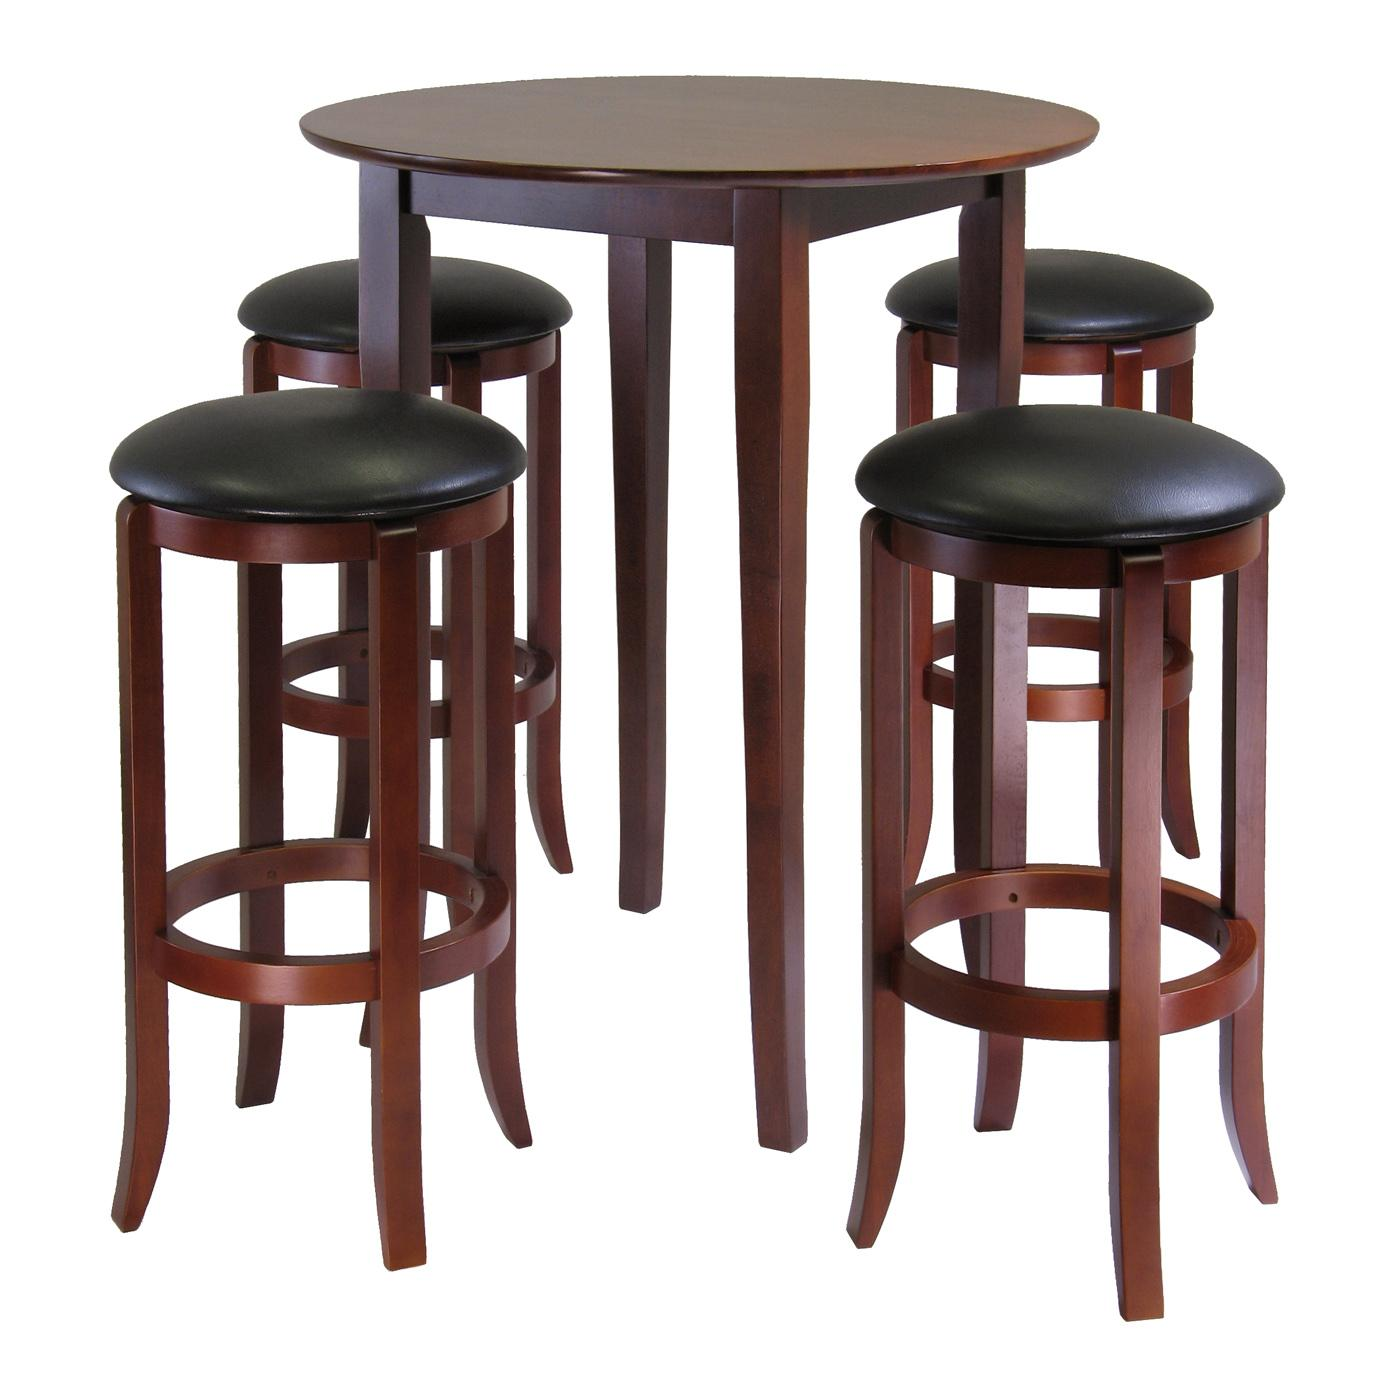 Winsome Fiona 5-Piece Round Pub High Table Set